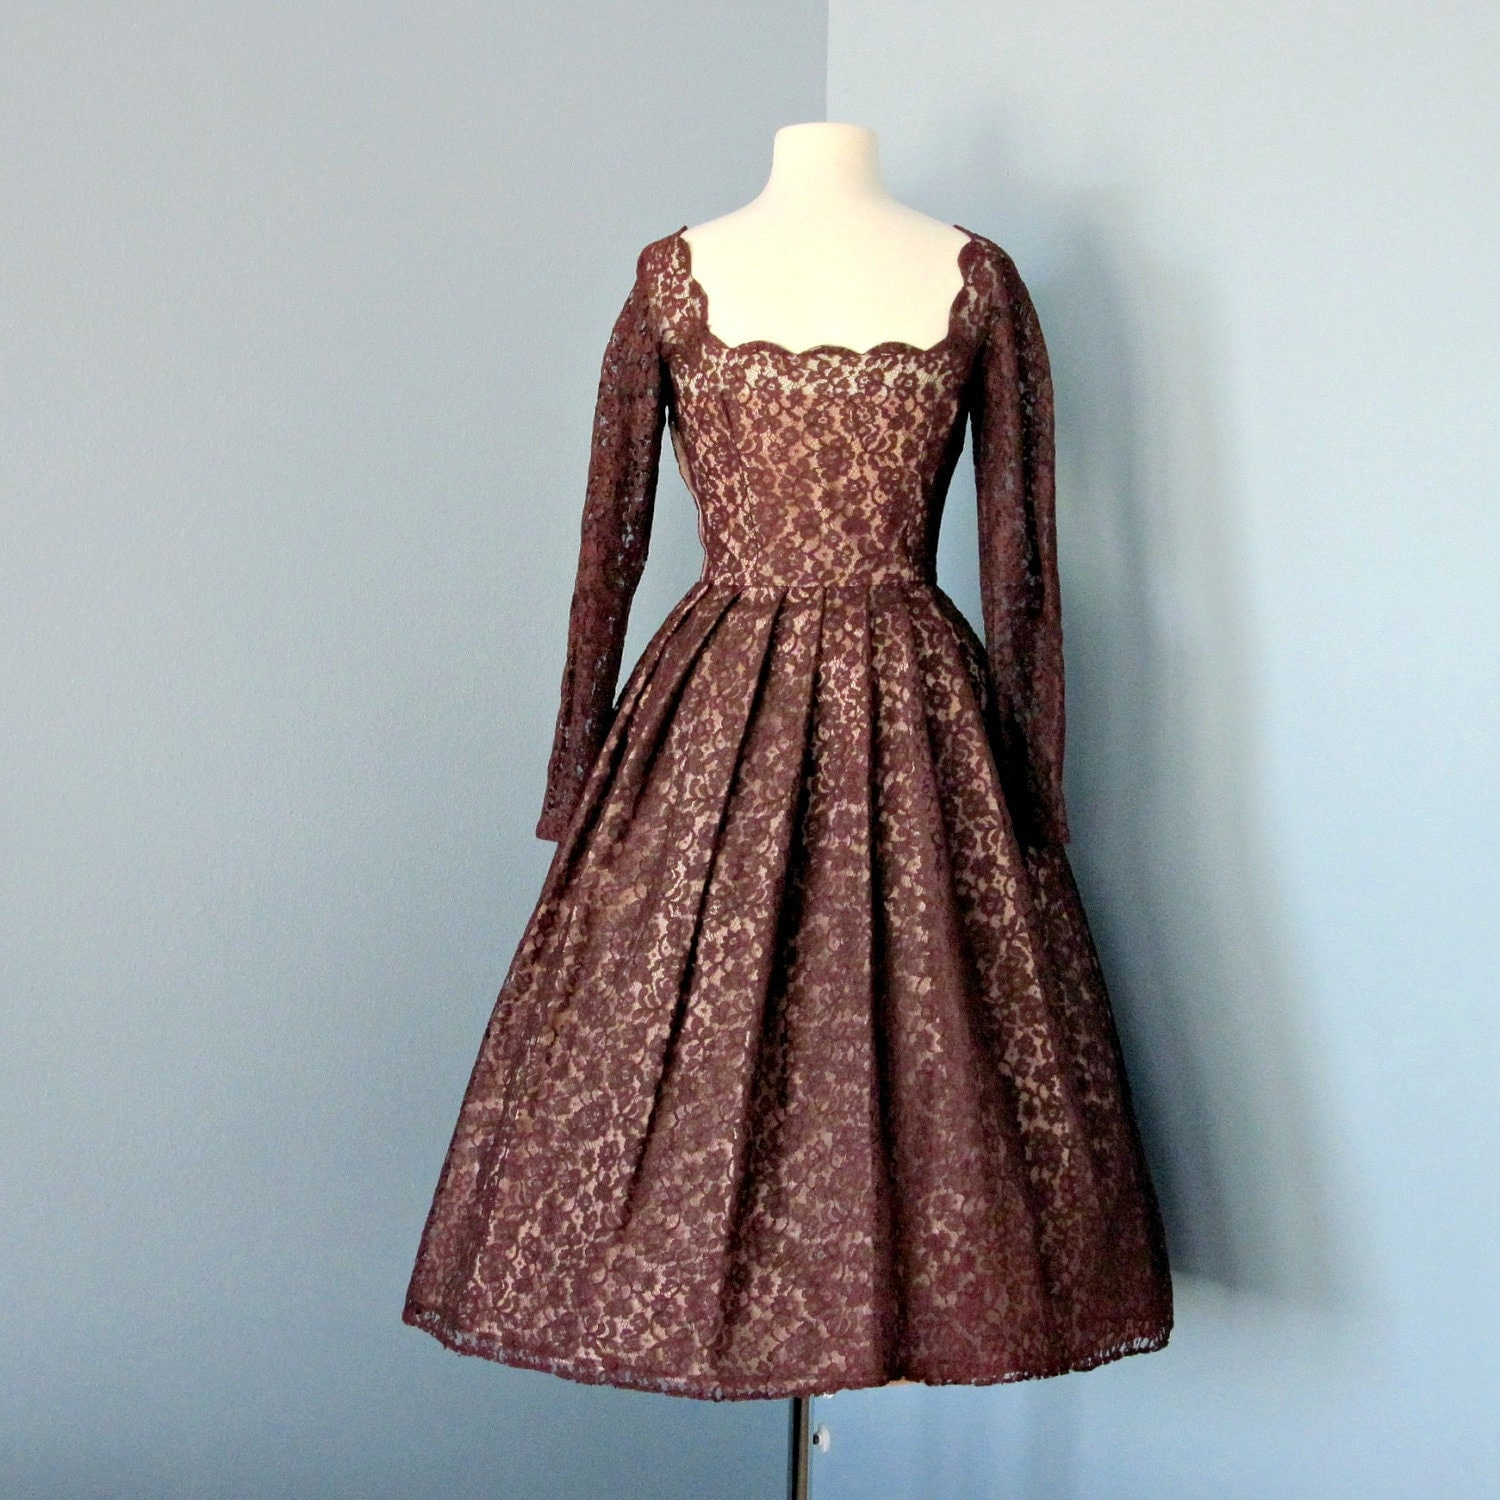 Vintage 1950's Lace Party Dress...Rich Chocolate Brown